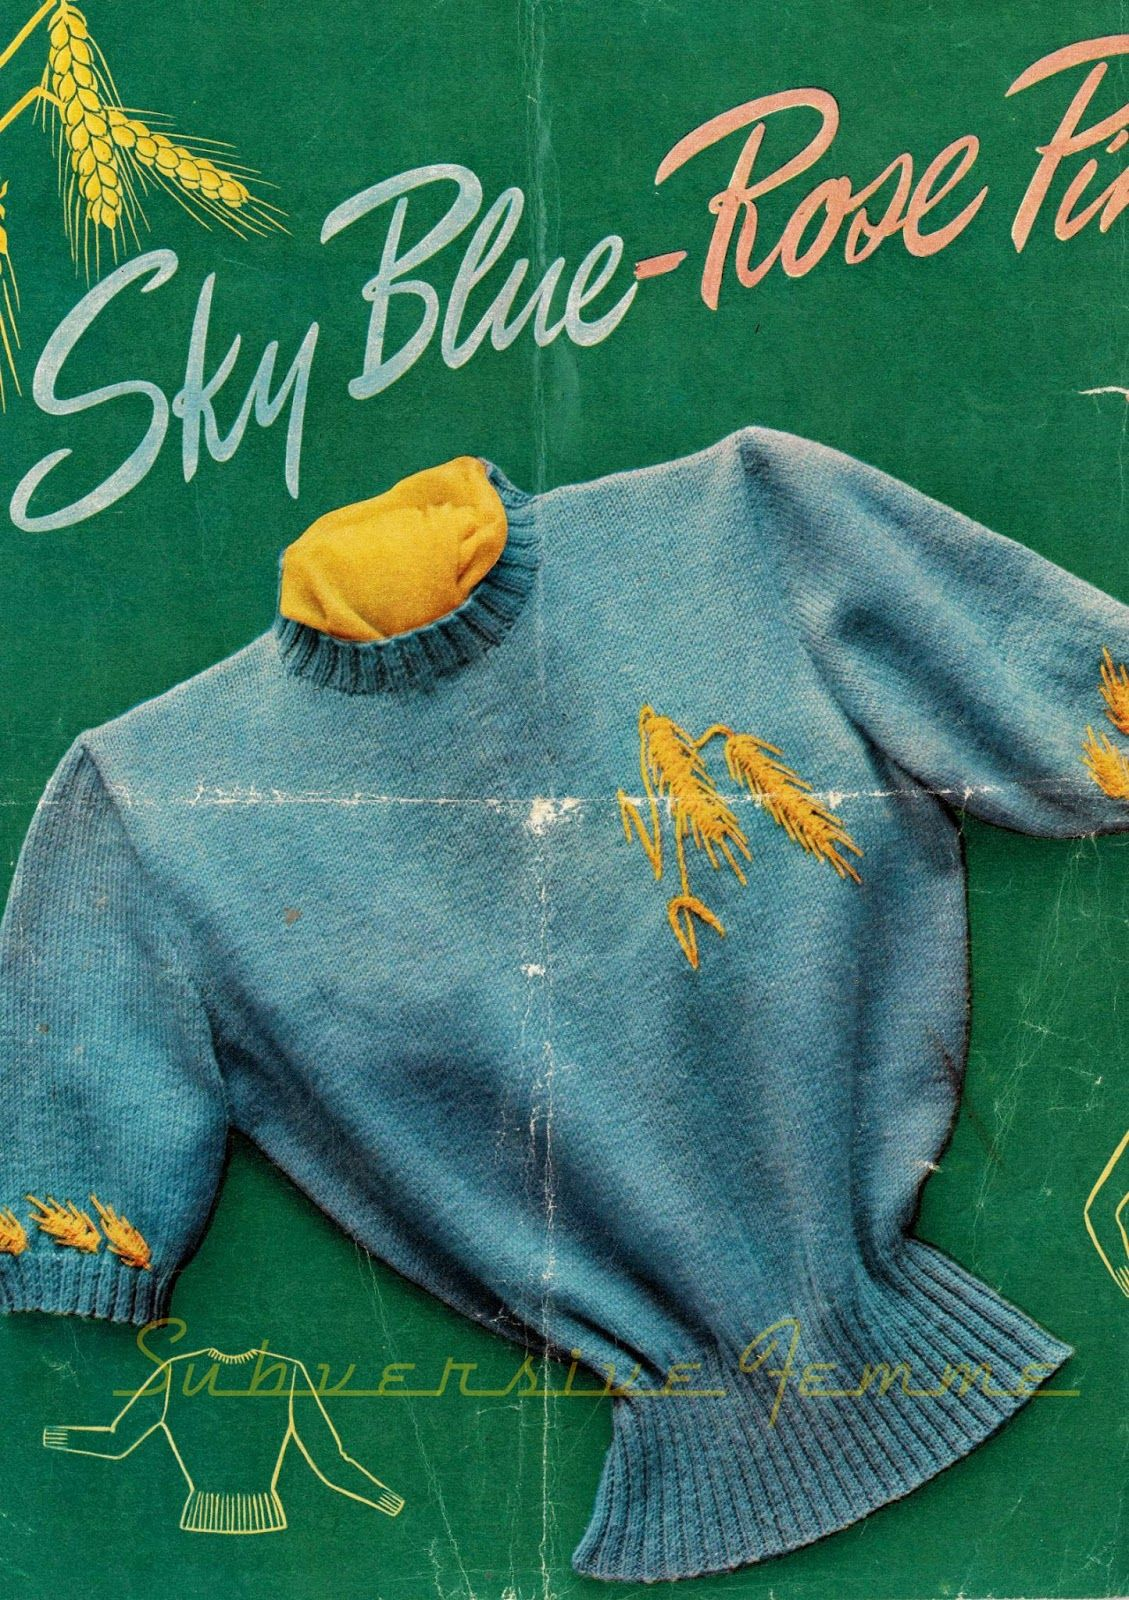 Novelty golden barley jumper c. 1950s | happy days are here again ...